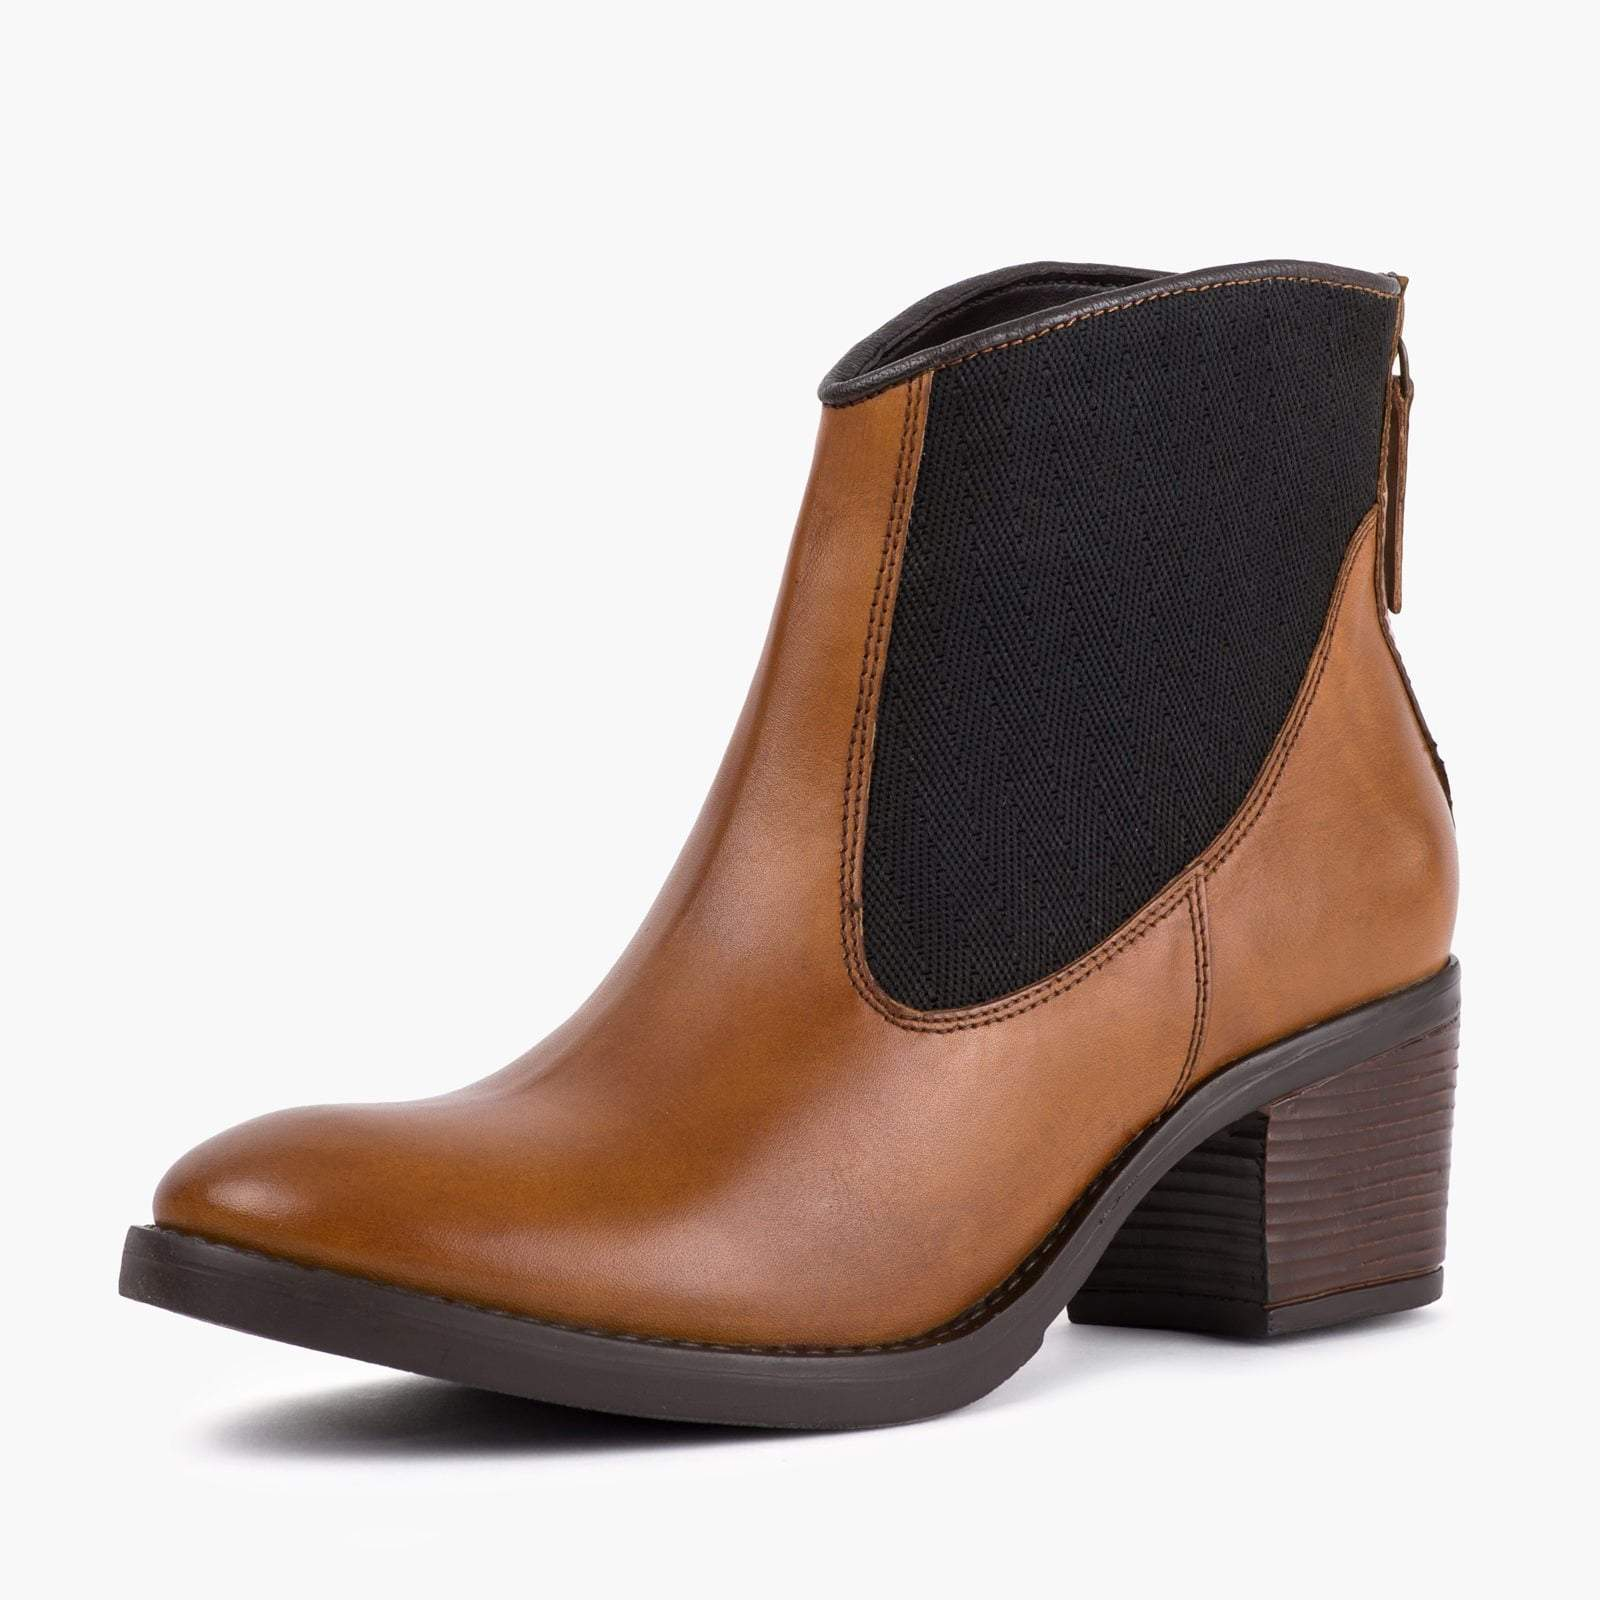 MEGAN TAN LEATHER ANKLE BOOT